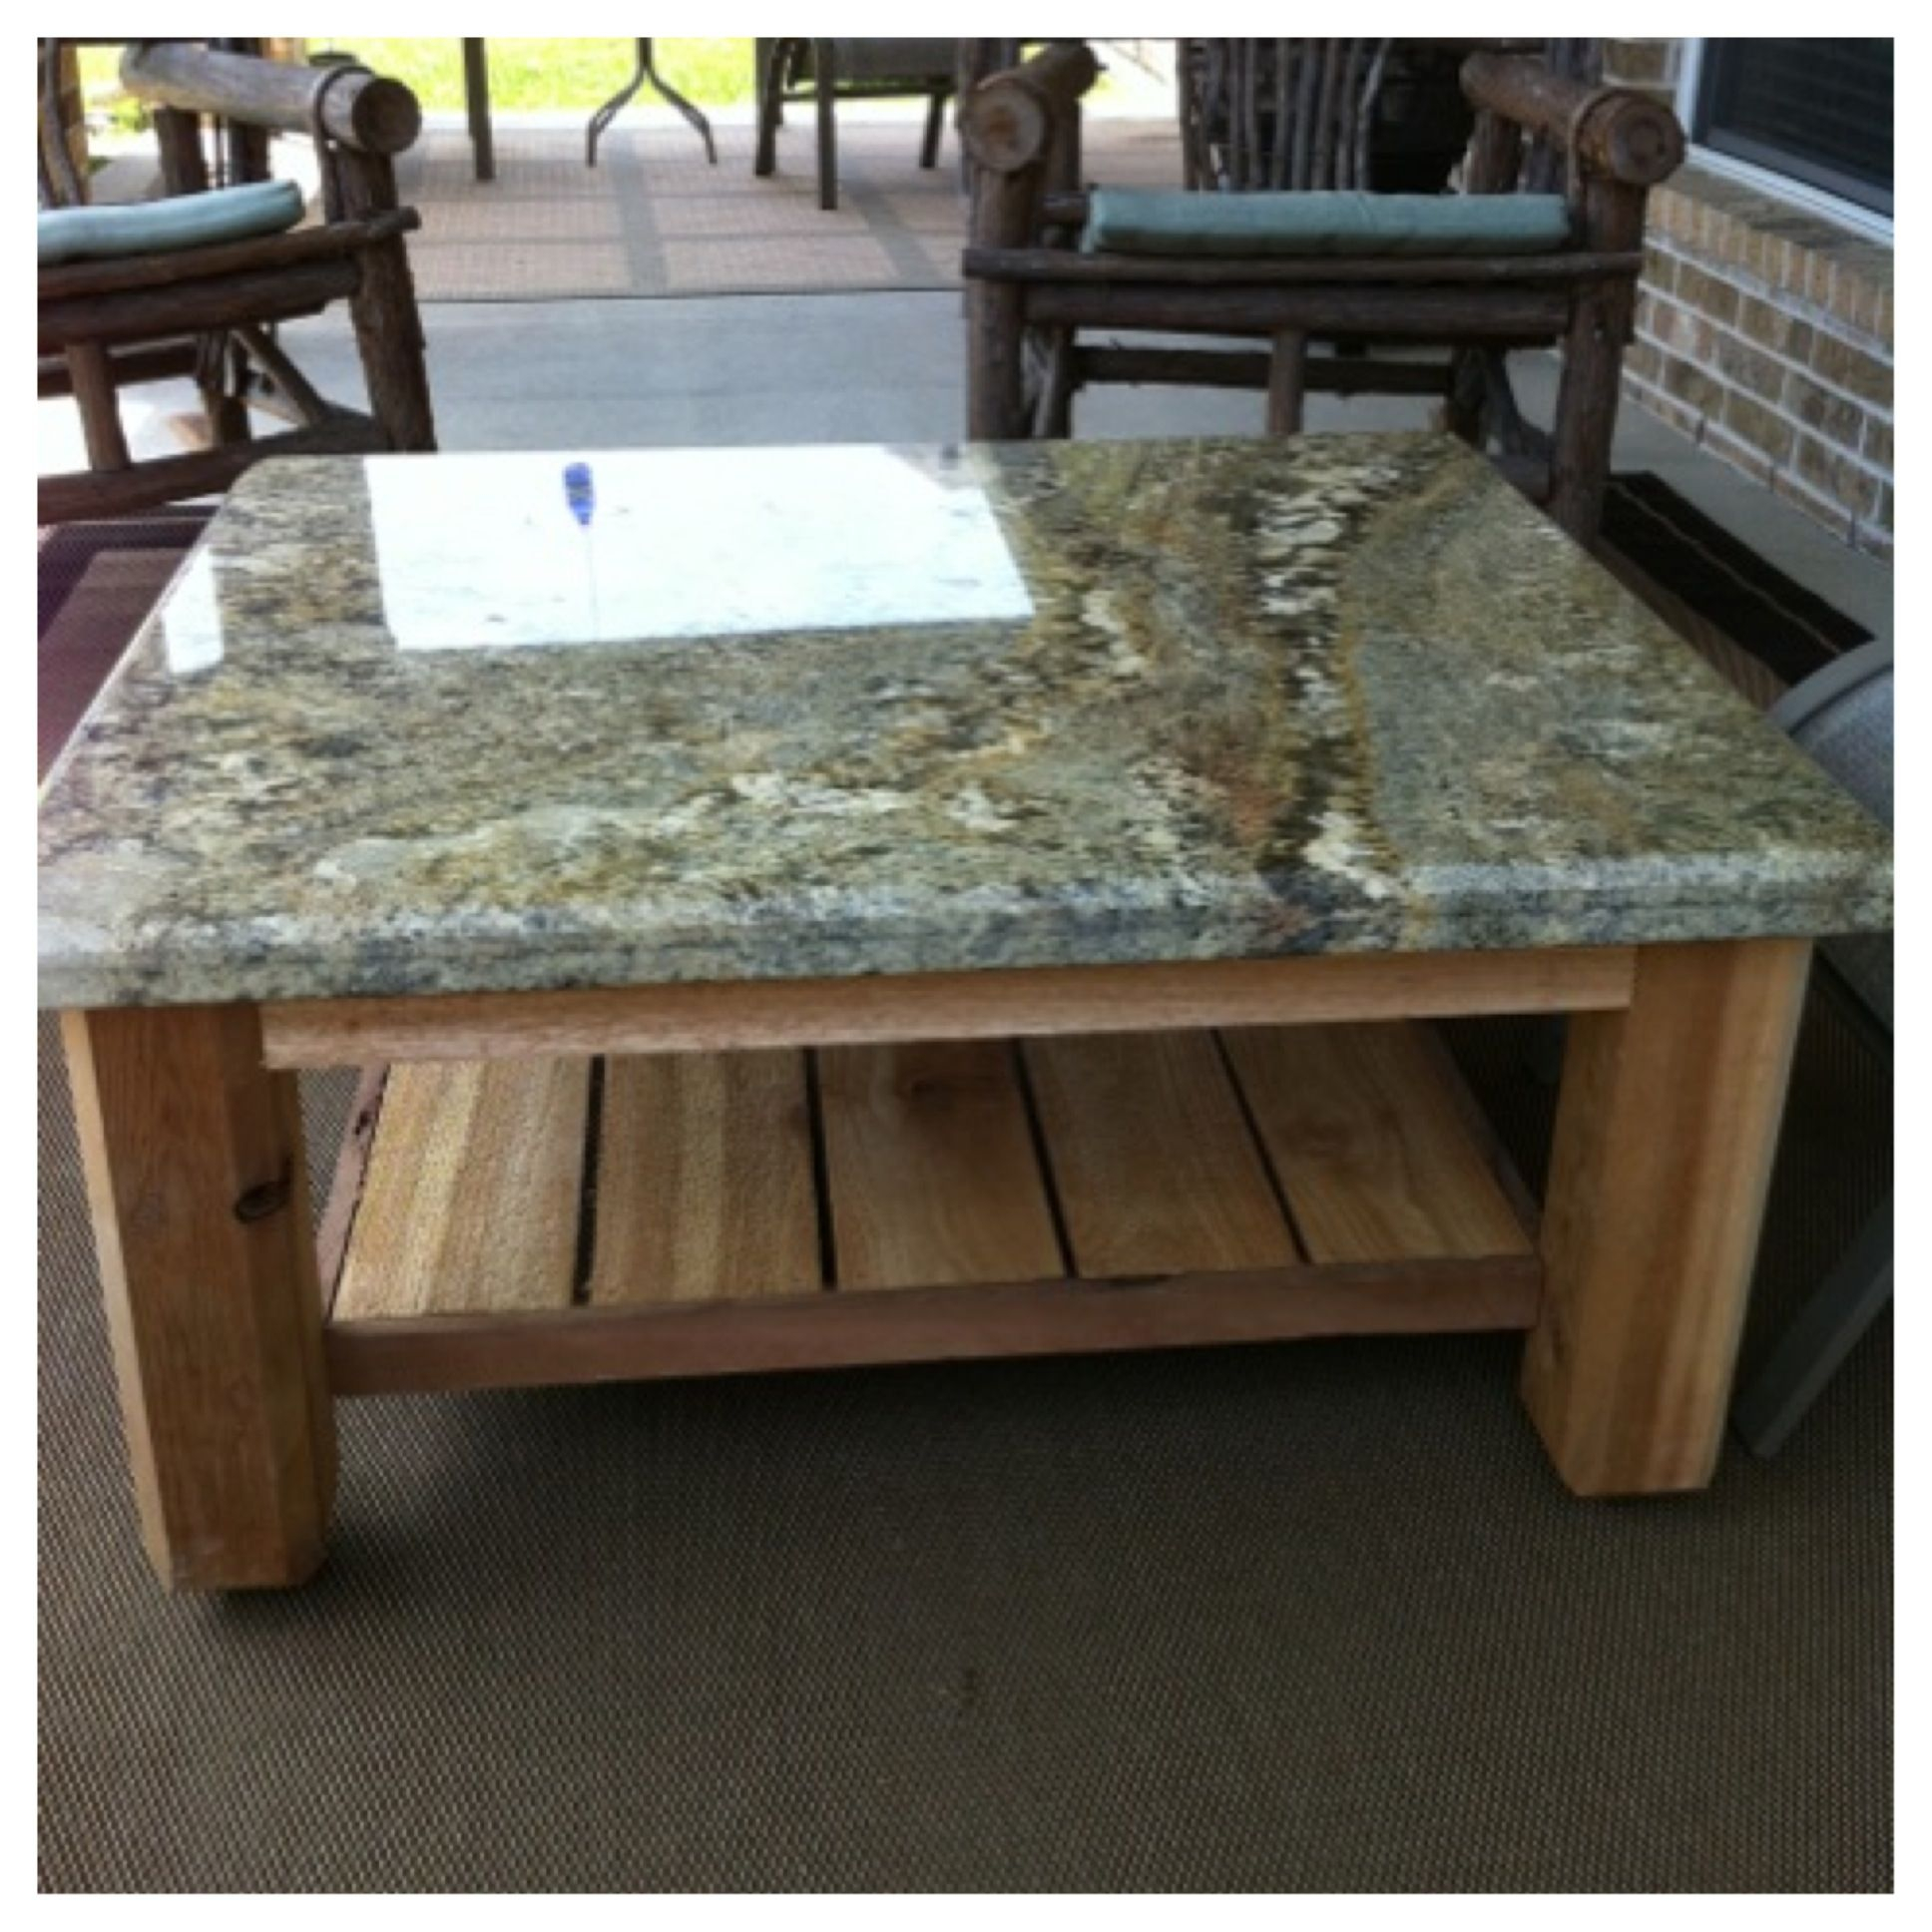 Custom Outdoor Patio Table With Granite Top This One Was Just with regard to dimensions 1936 X 1936